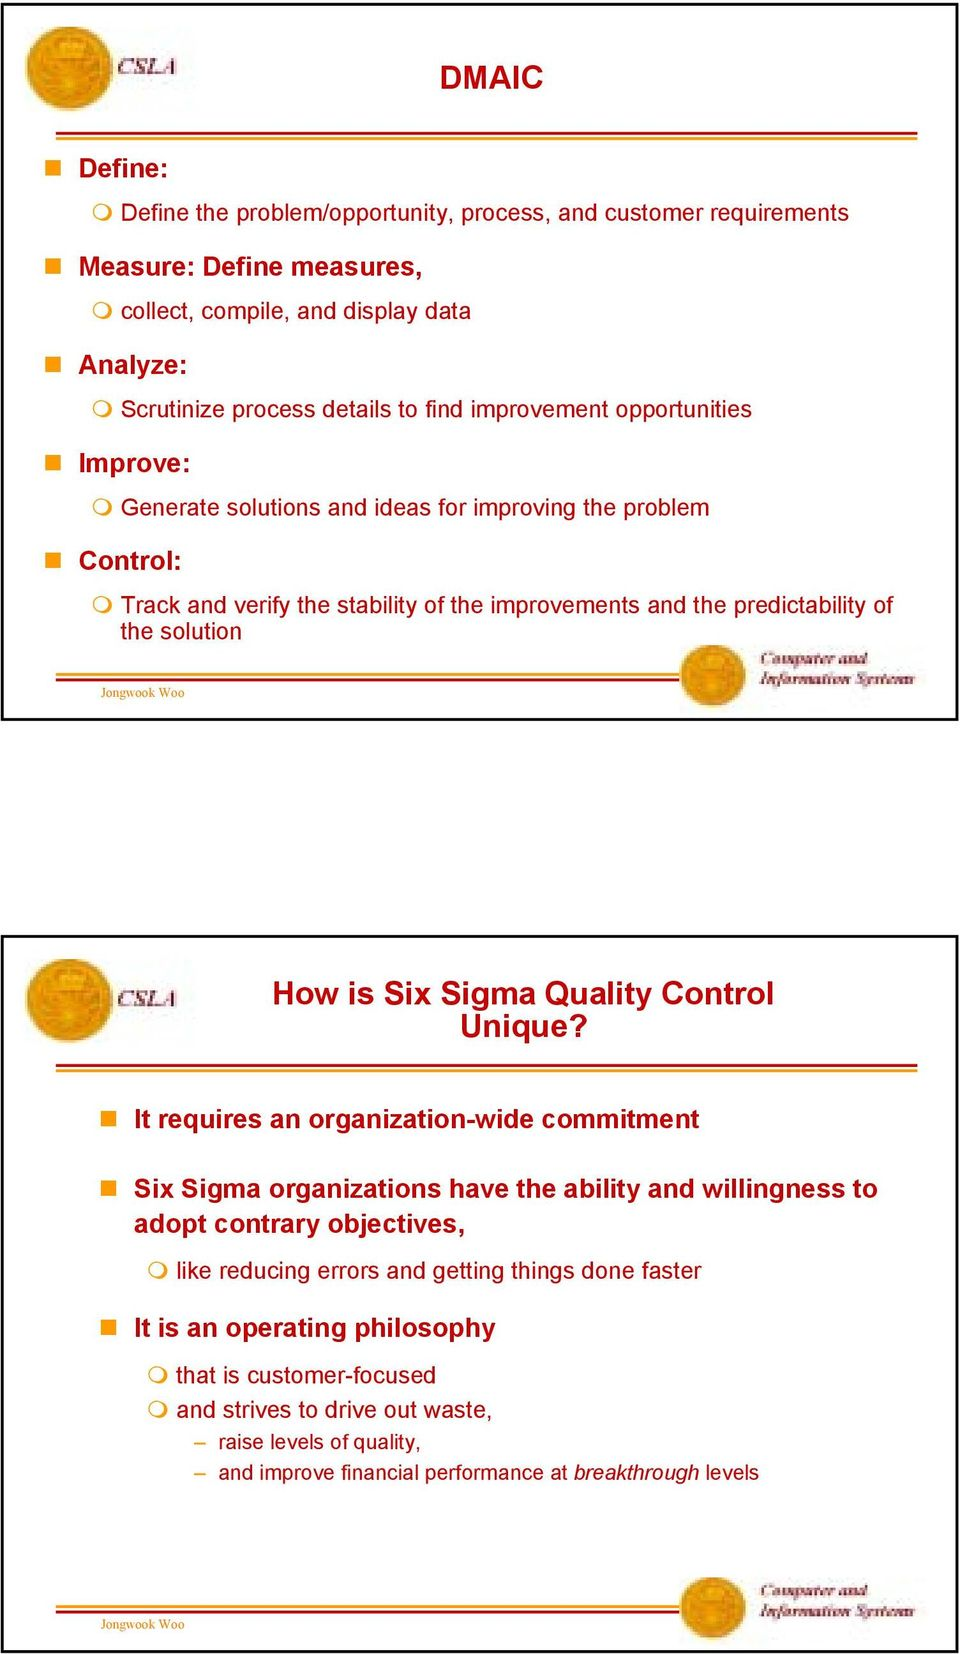 How is Six Sigma Quality Control Unique?